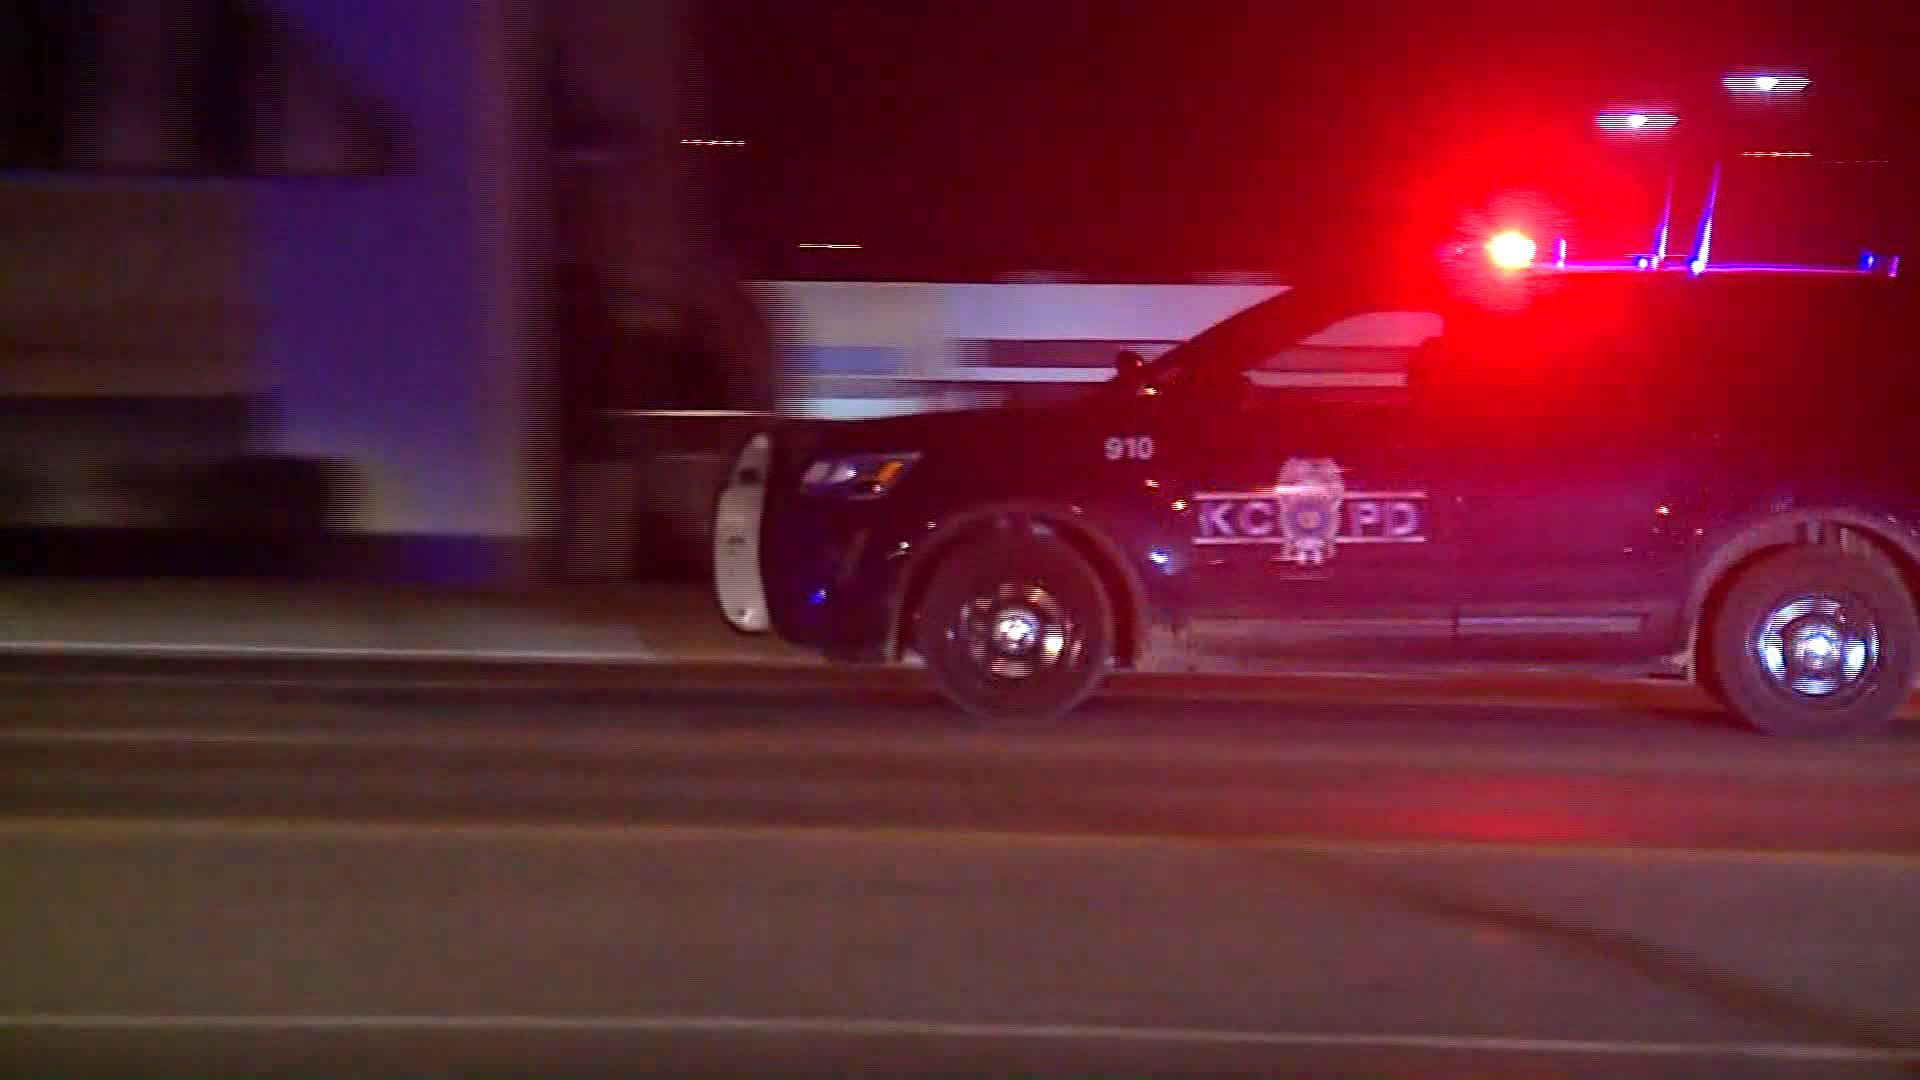 A gunman opened fire on people waiting in line to get into a Kansas City bar and was stopped by an armed security guard, police said. (Credit: KMBC)